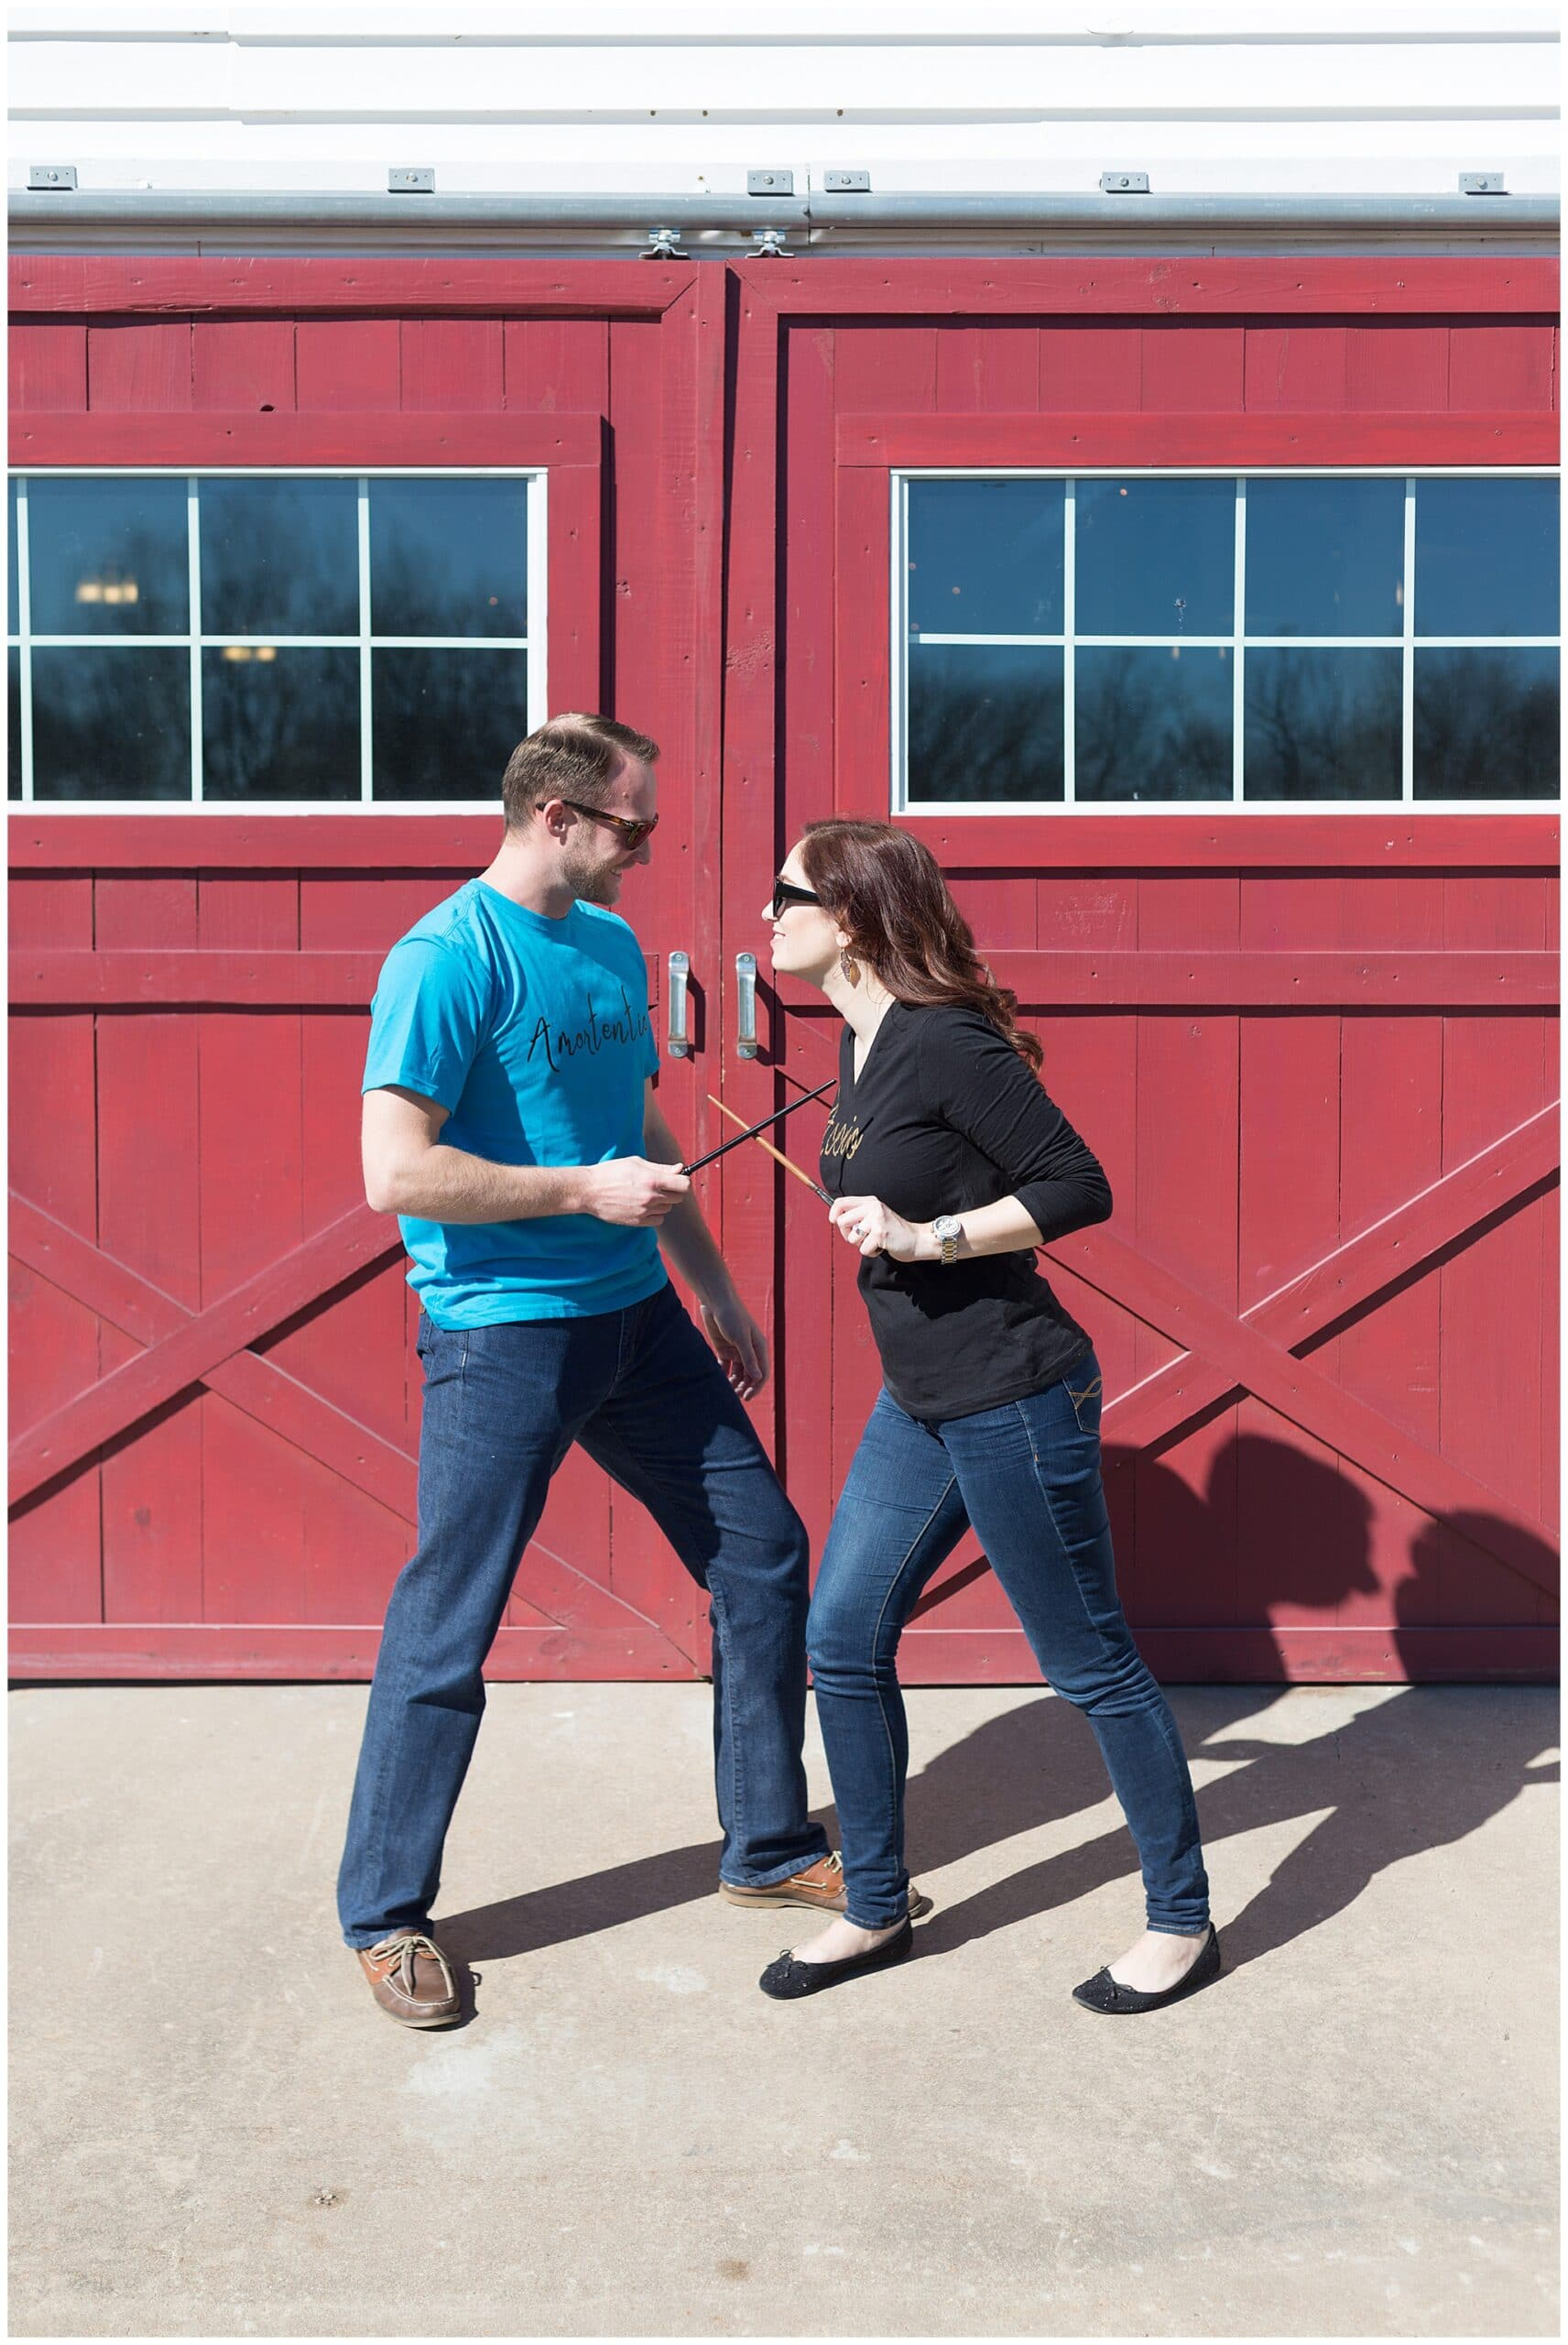 Harry Potter wedding photographer Swish and Click Photography capturing an engagement session at the Grand Texana Houston